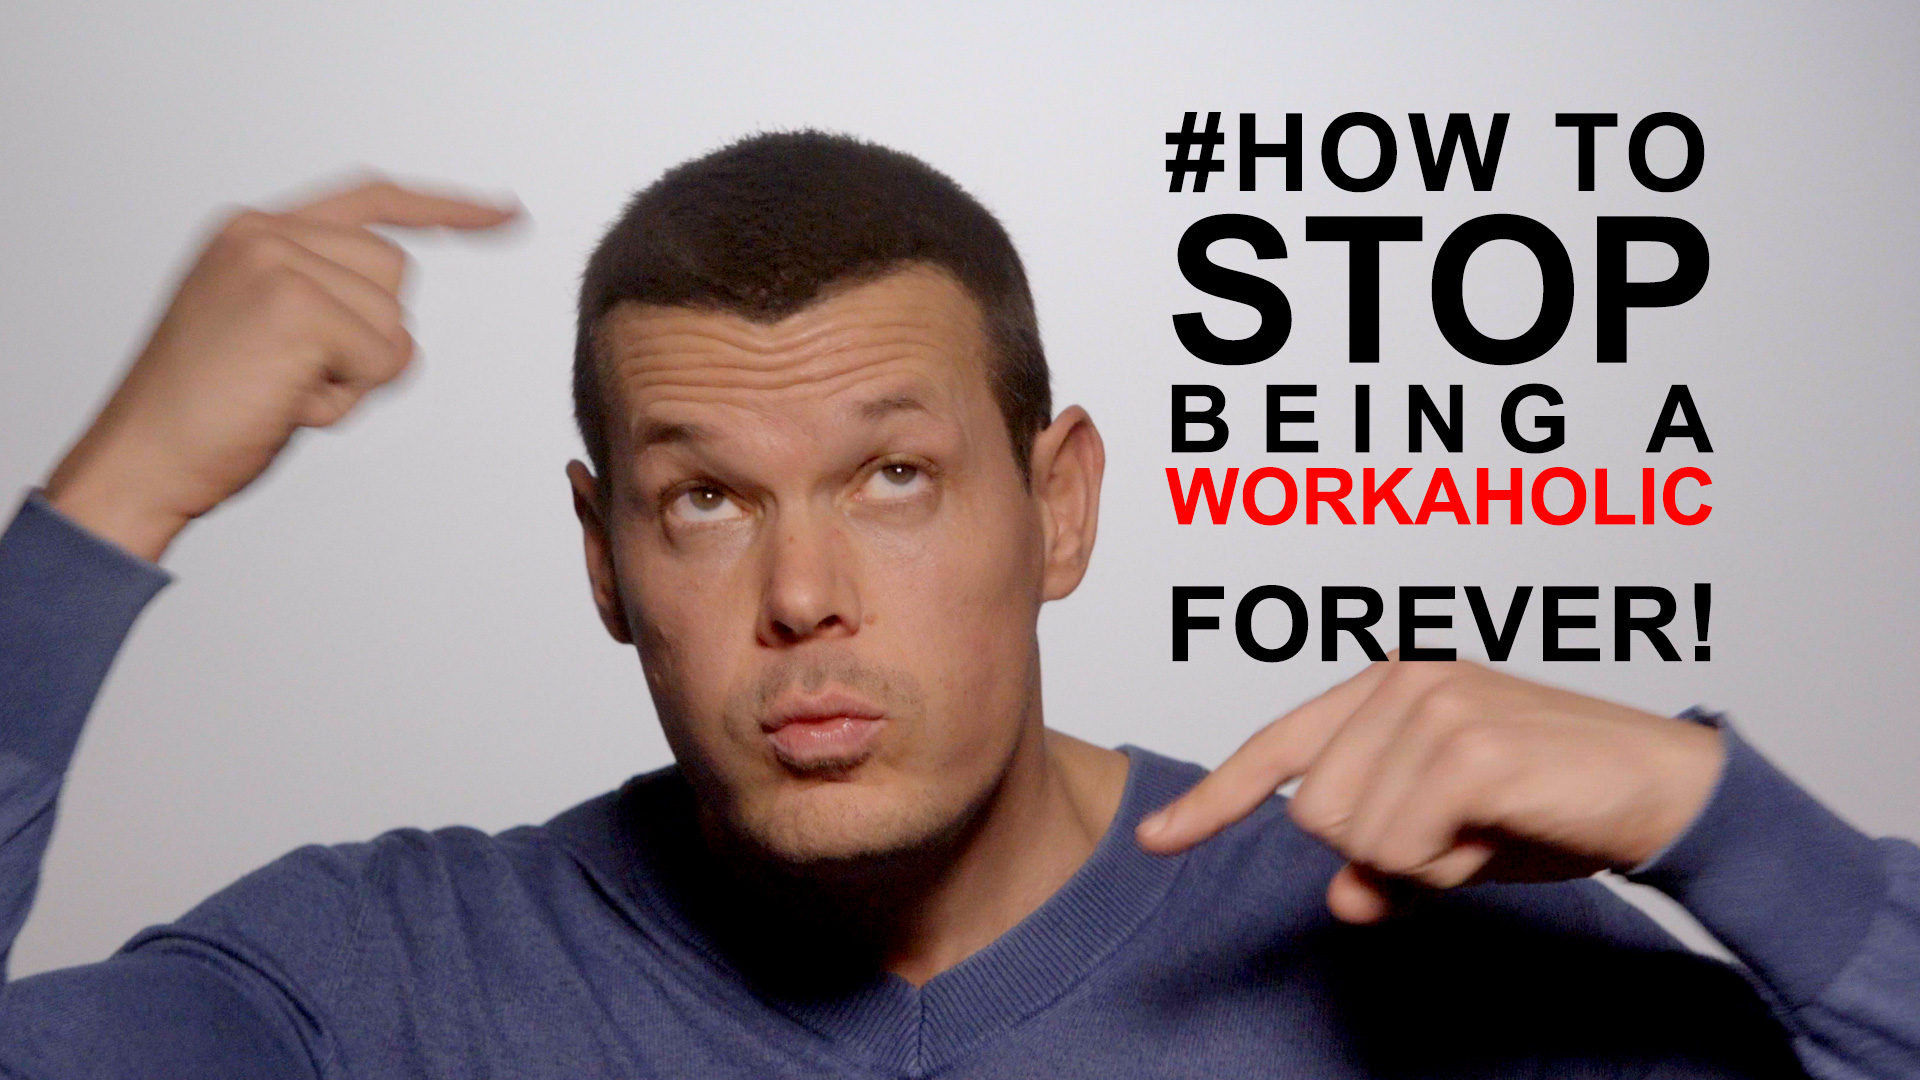 Workaholic: How to stop being a workaholic forever